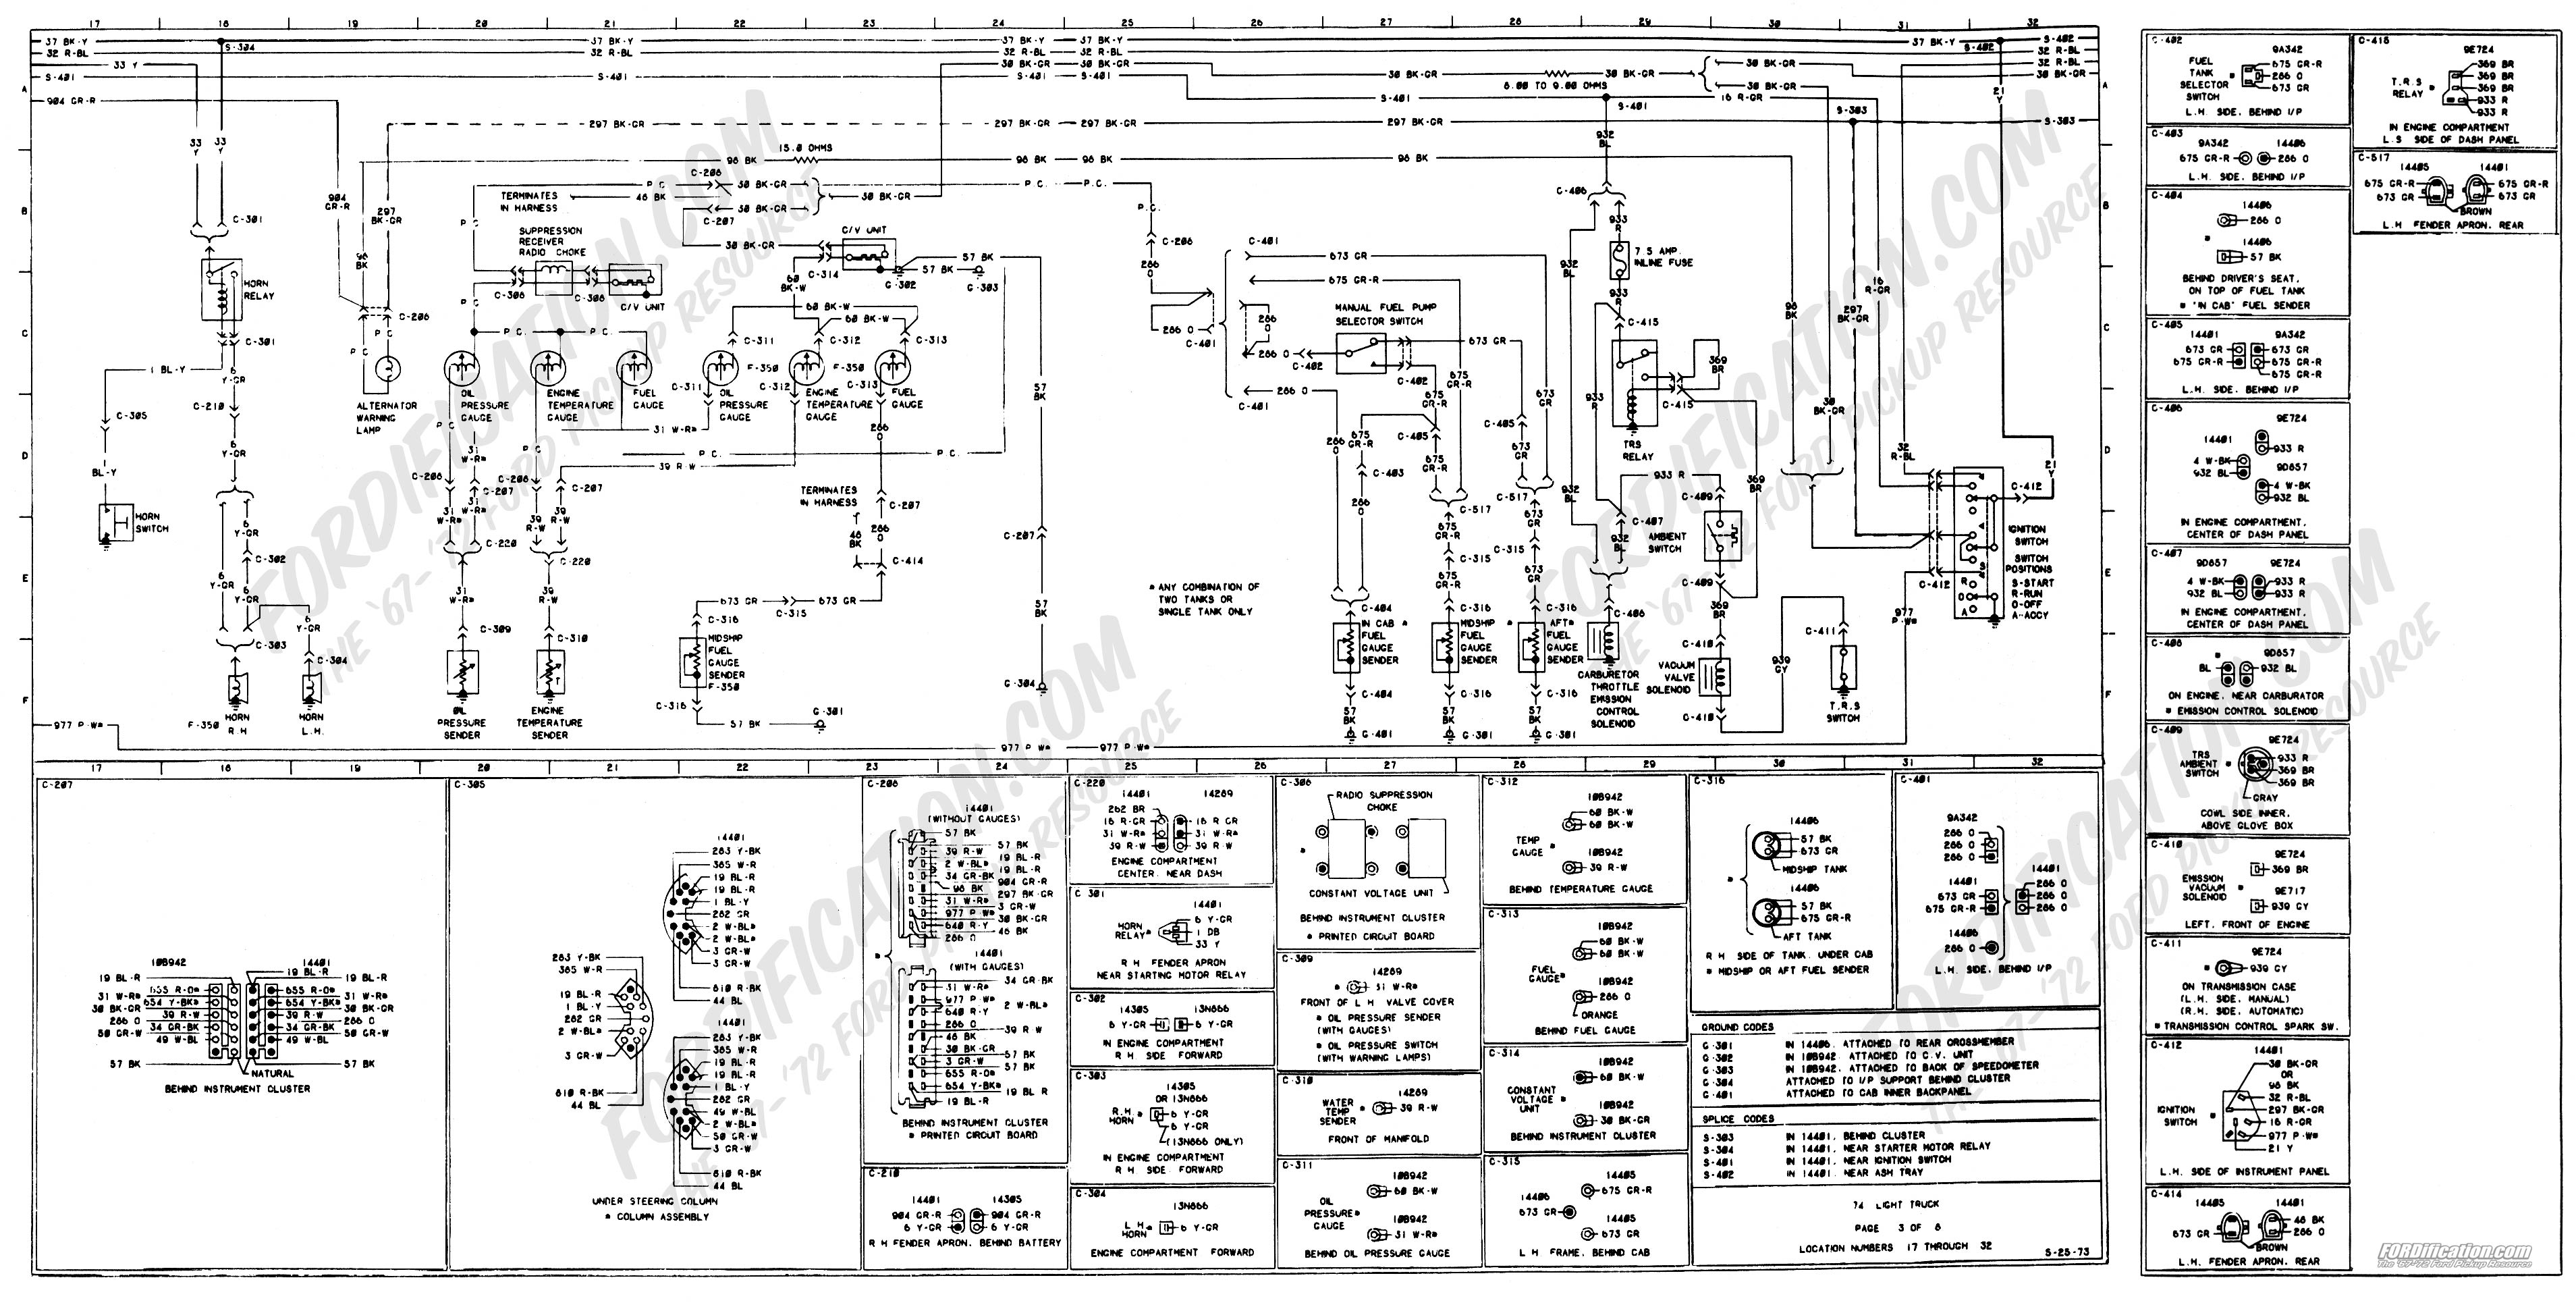 Ford Wiring Schematic Diagram Data 1965 Mustang Alternator 1973 1979 Truck Diagrams Schematics Fordification Net